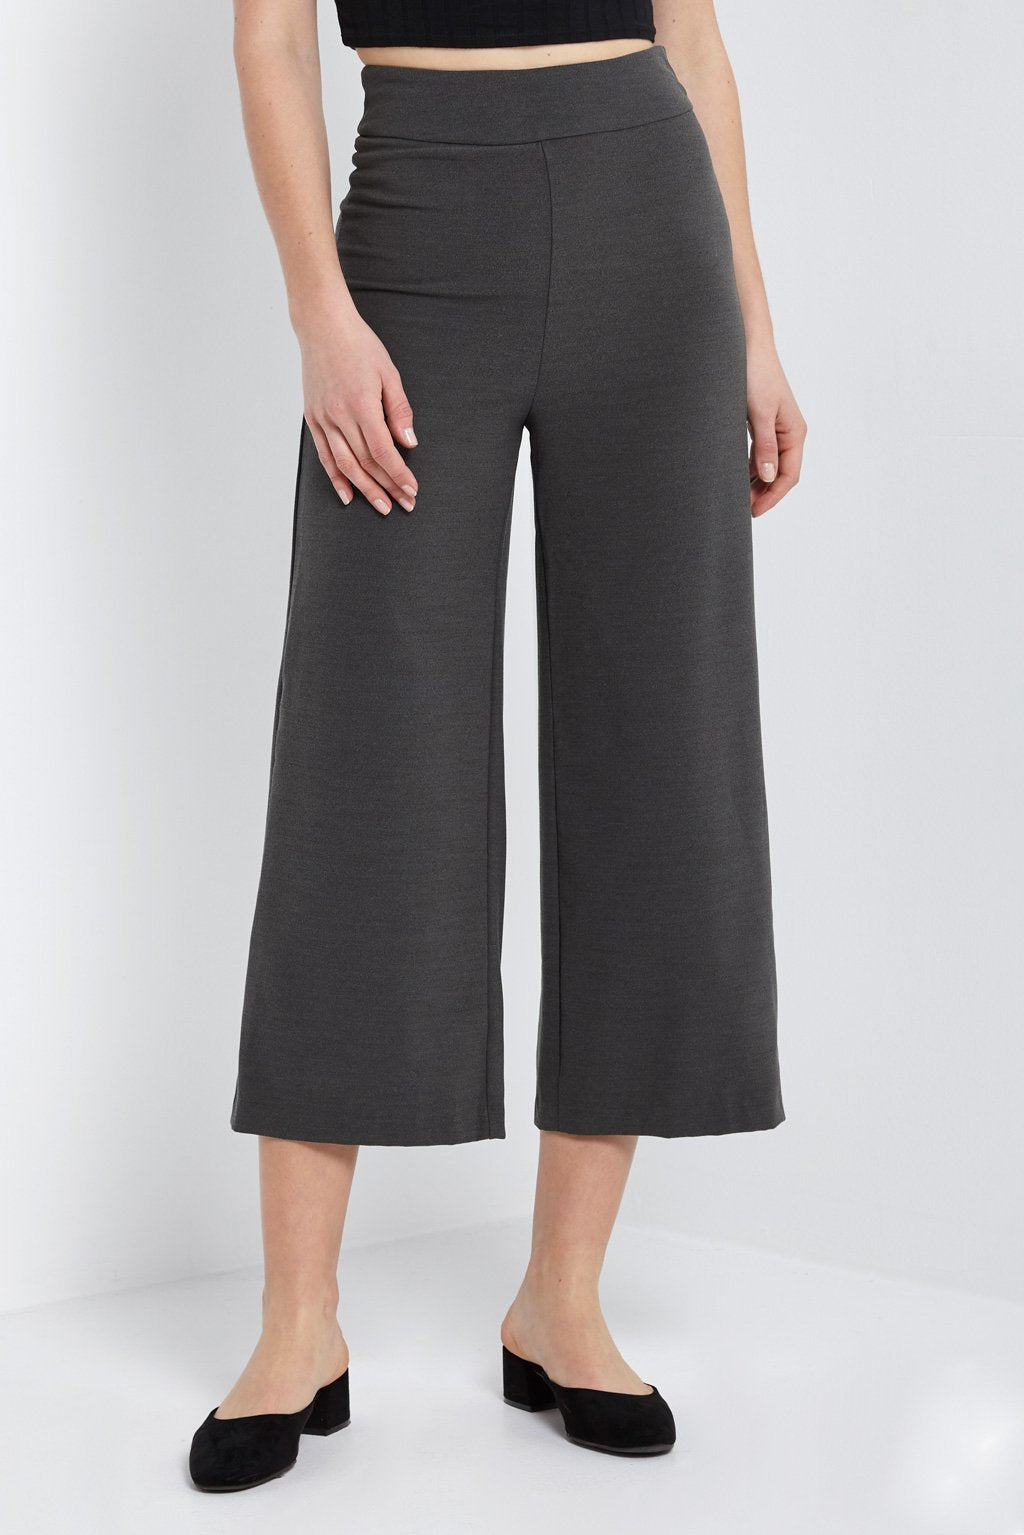 Poshsquare Pants Warner Culottes